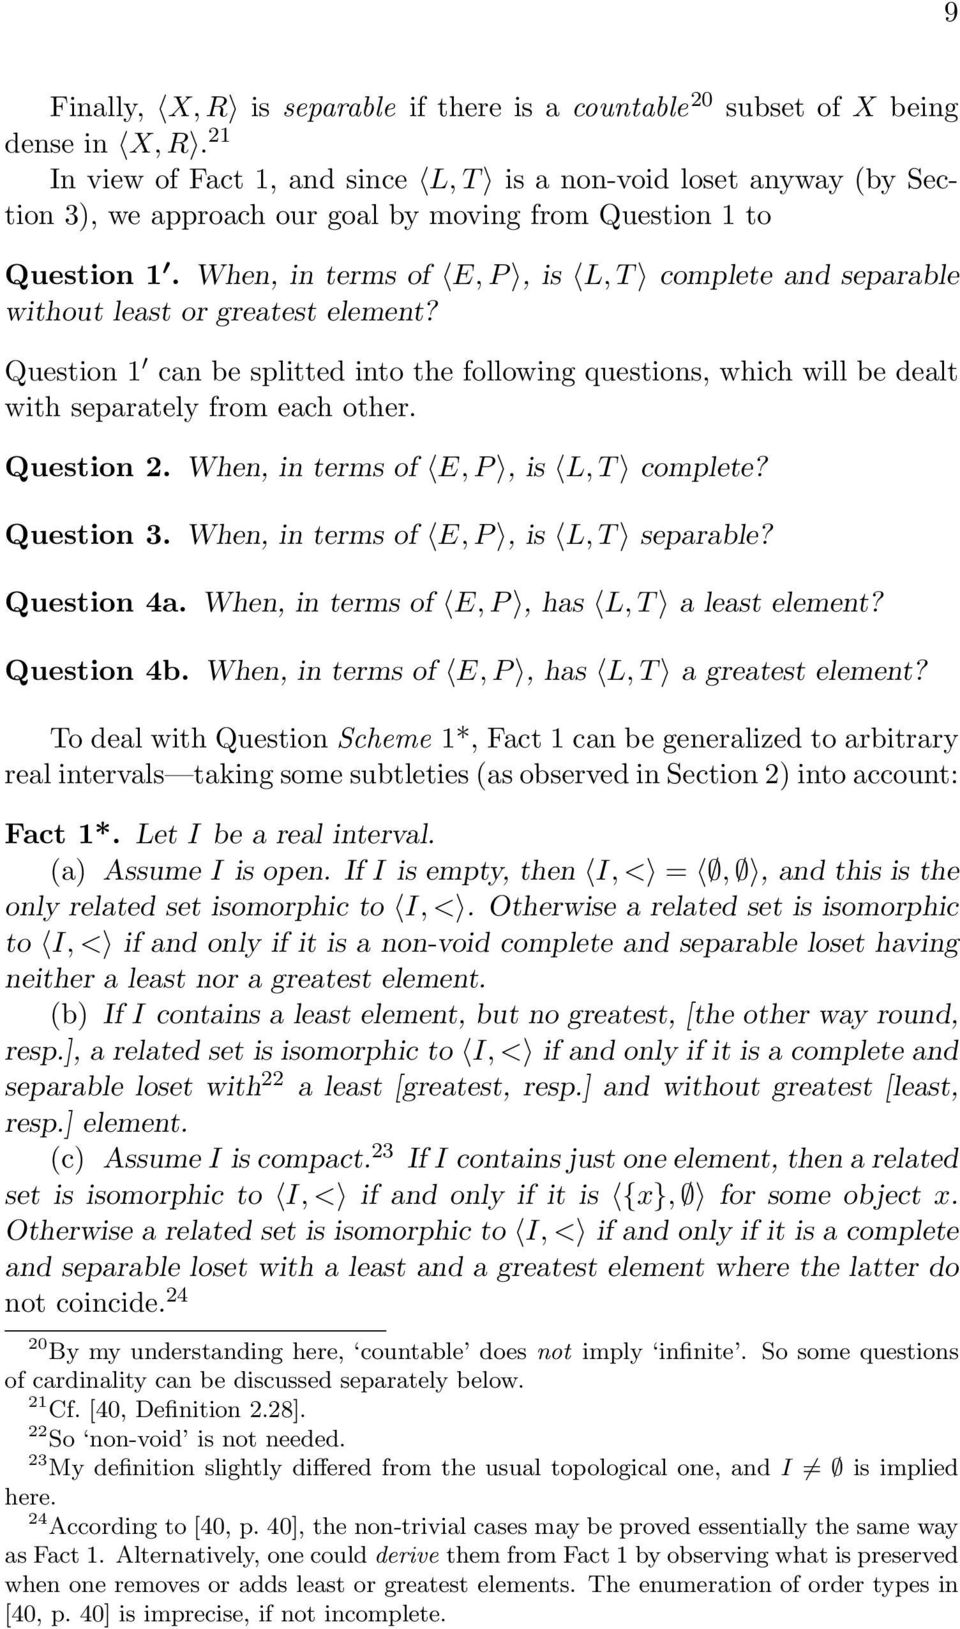 When, in terms of E, P, is L, T complete and separable without least or greatest element? Question 1 can be splitted into the following questions, which will be dealt with separately from each other.